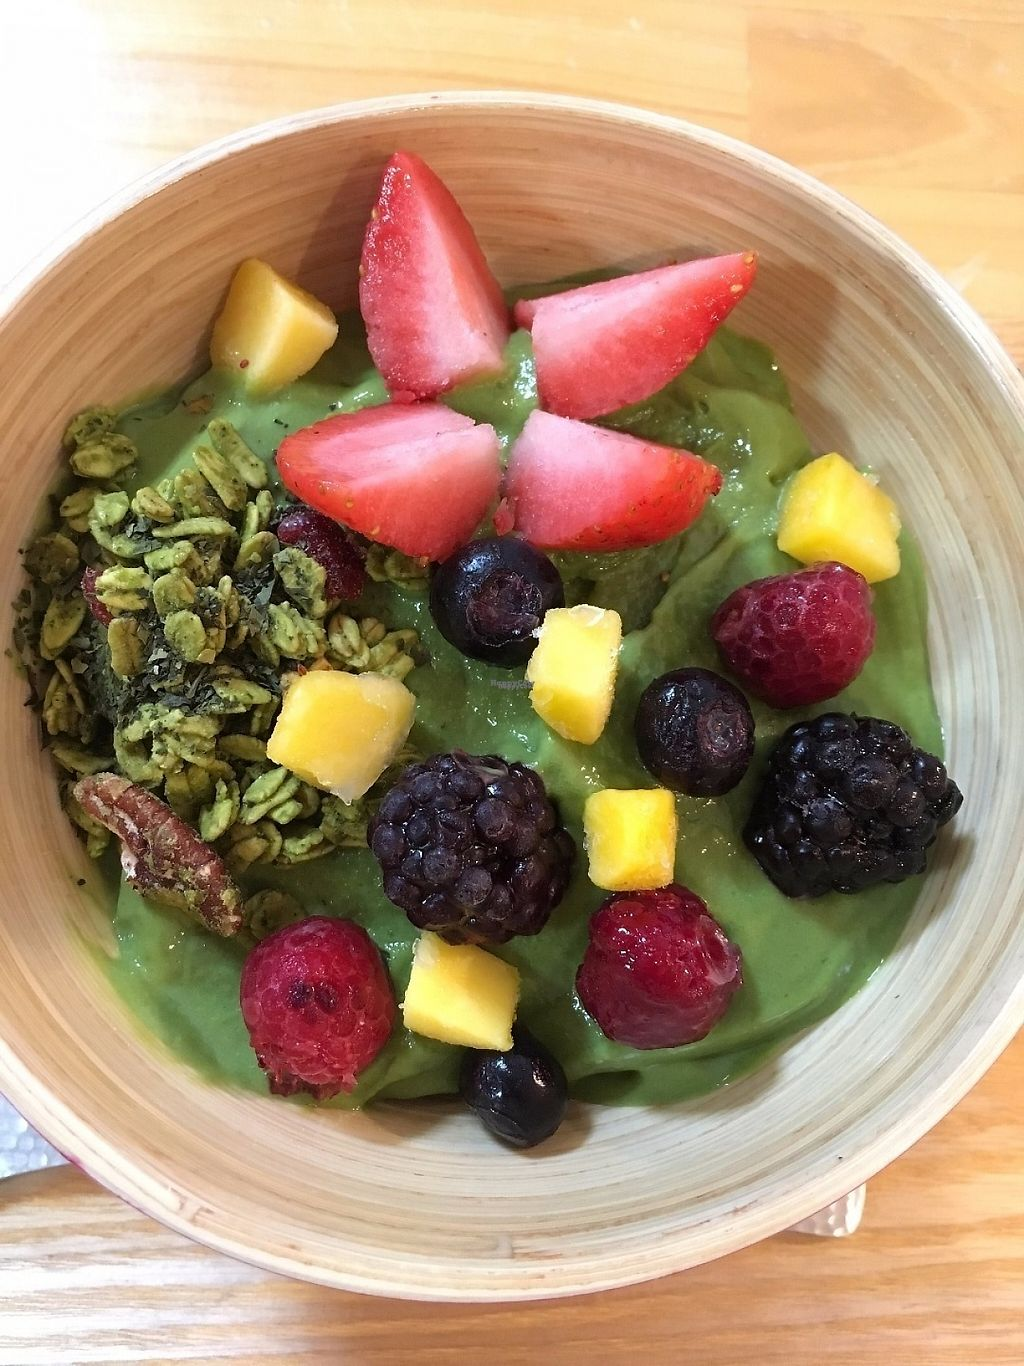 """Photo of Cocolo Kyoto  by <a href=""""/members/profile/shotom"""">shotom</a> <br/>Best Matcha Smoothie Bowl in Kyoto! <br/> February 8, 2017  - <a href='/contact/abuse/image/83701/224110'>Report</a>"""